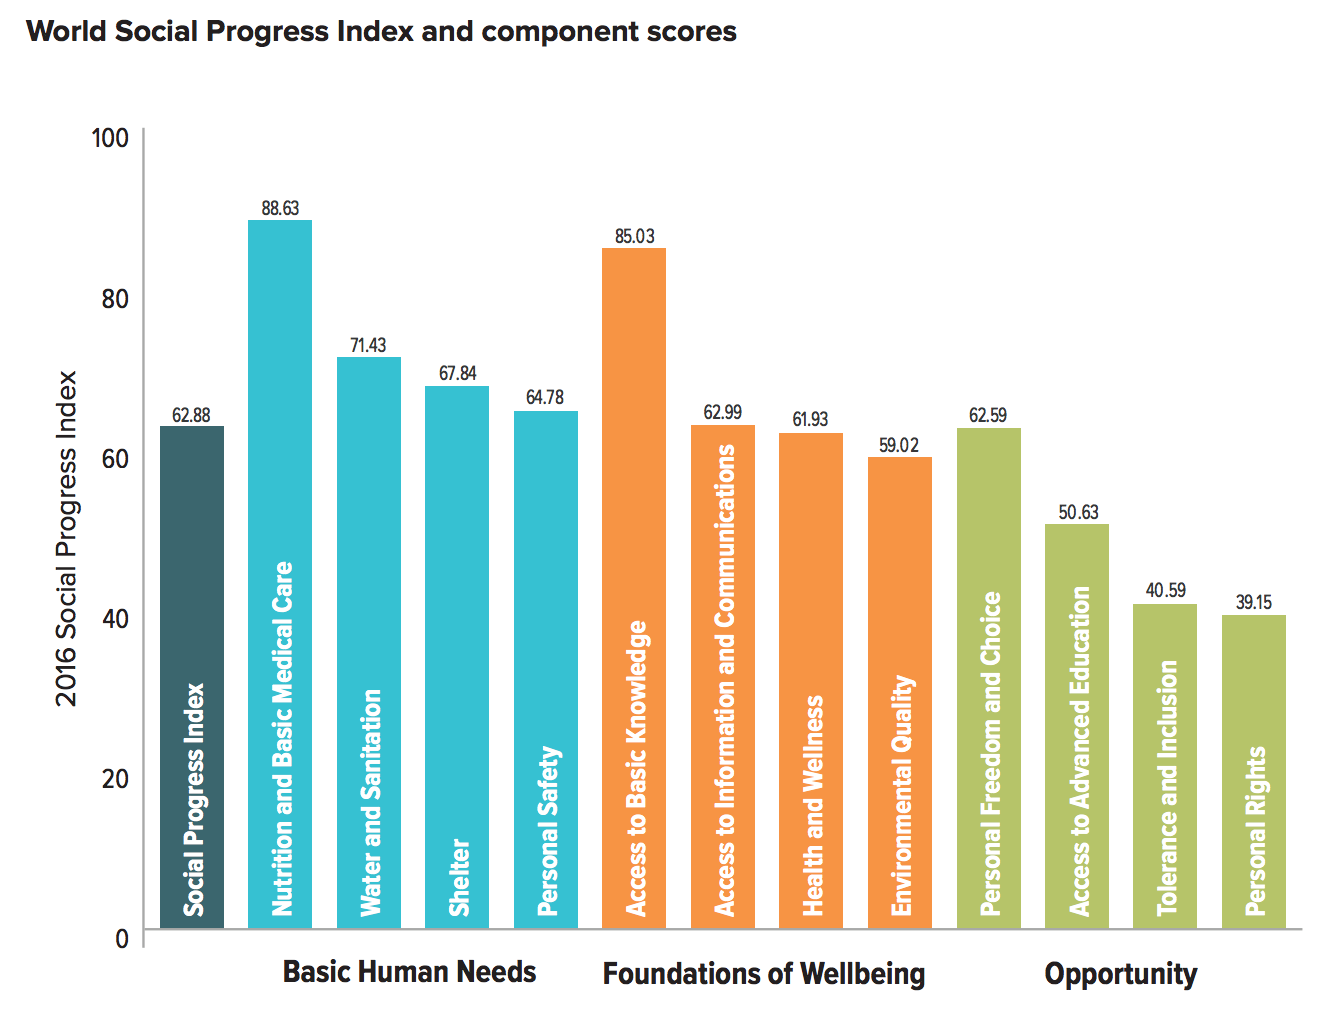 World Social Progress Index and component scores